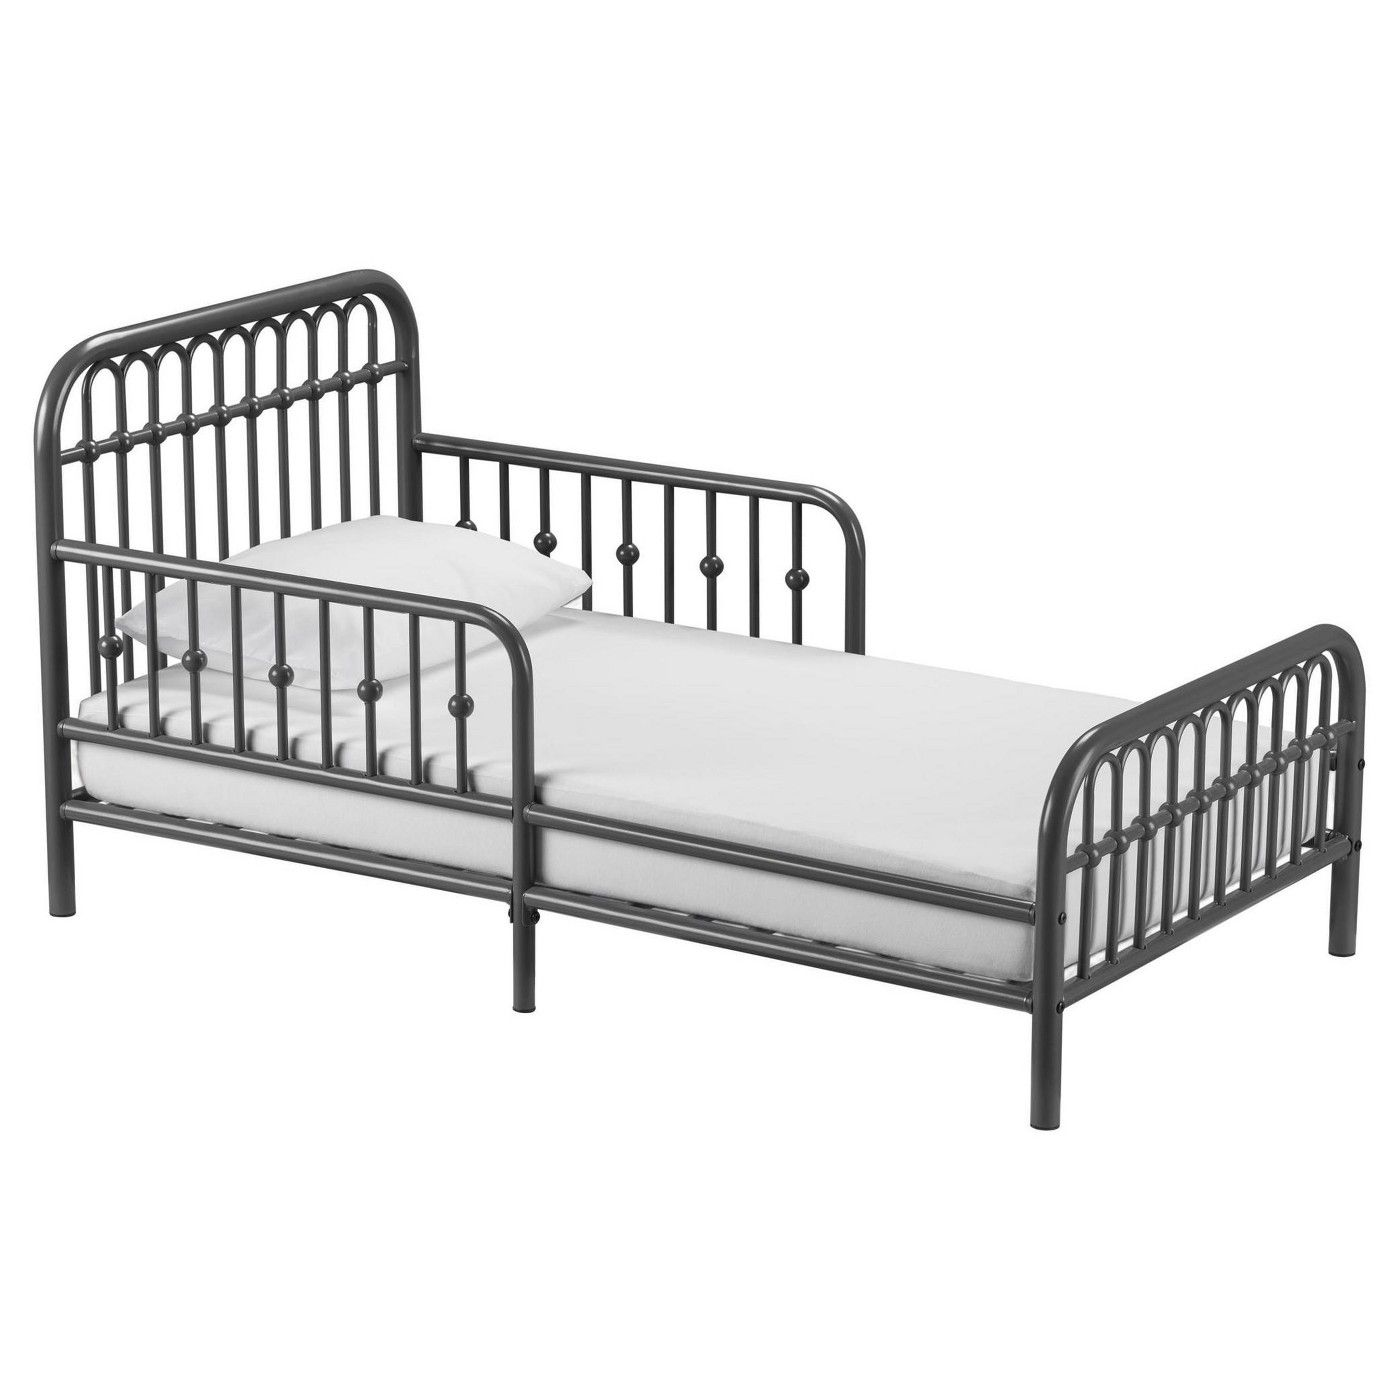 The 7 Best Toddler Beds Of 2019